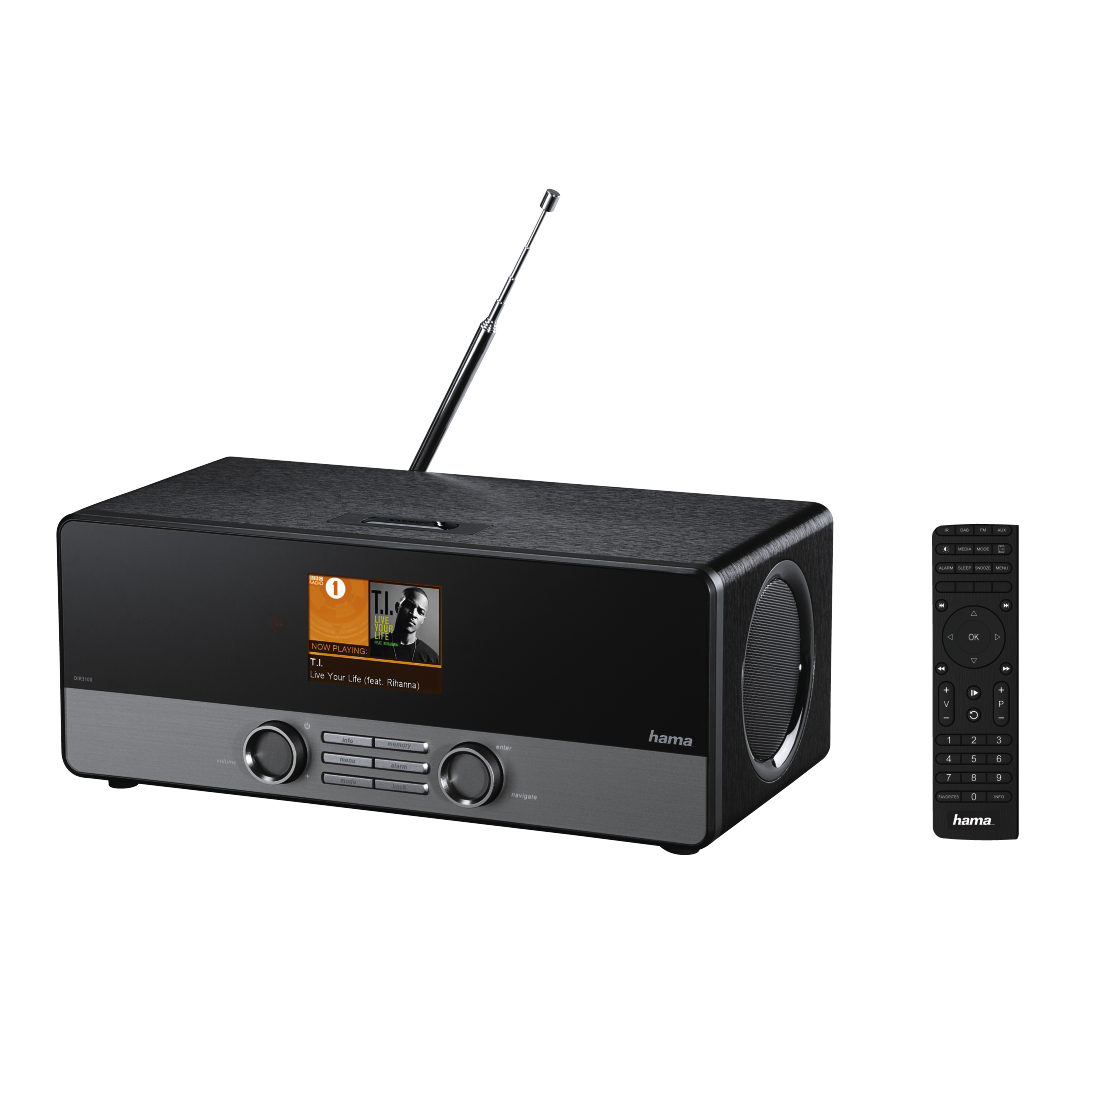 abx5 High-Res Image 5 - Hama, DIR3100MS Digital Radio, Internet Radio/DAB+/FM/Multi-Room/ App Control